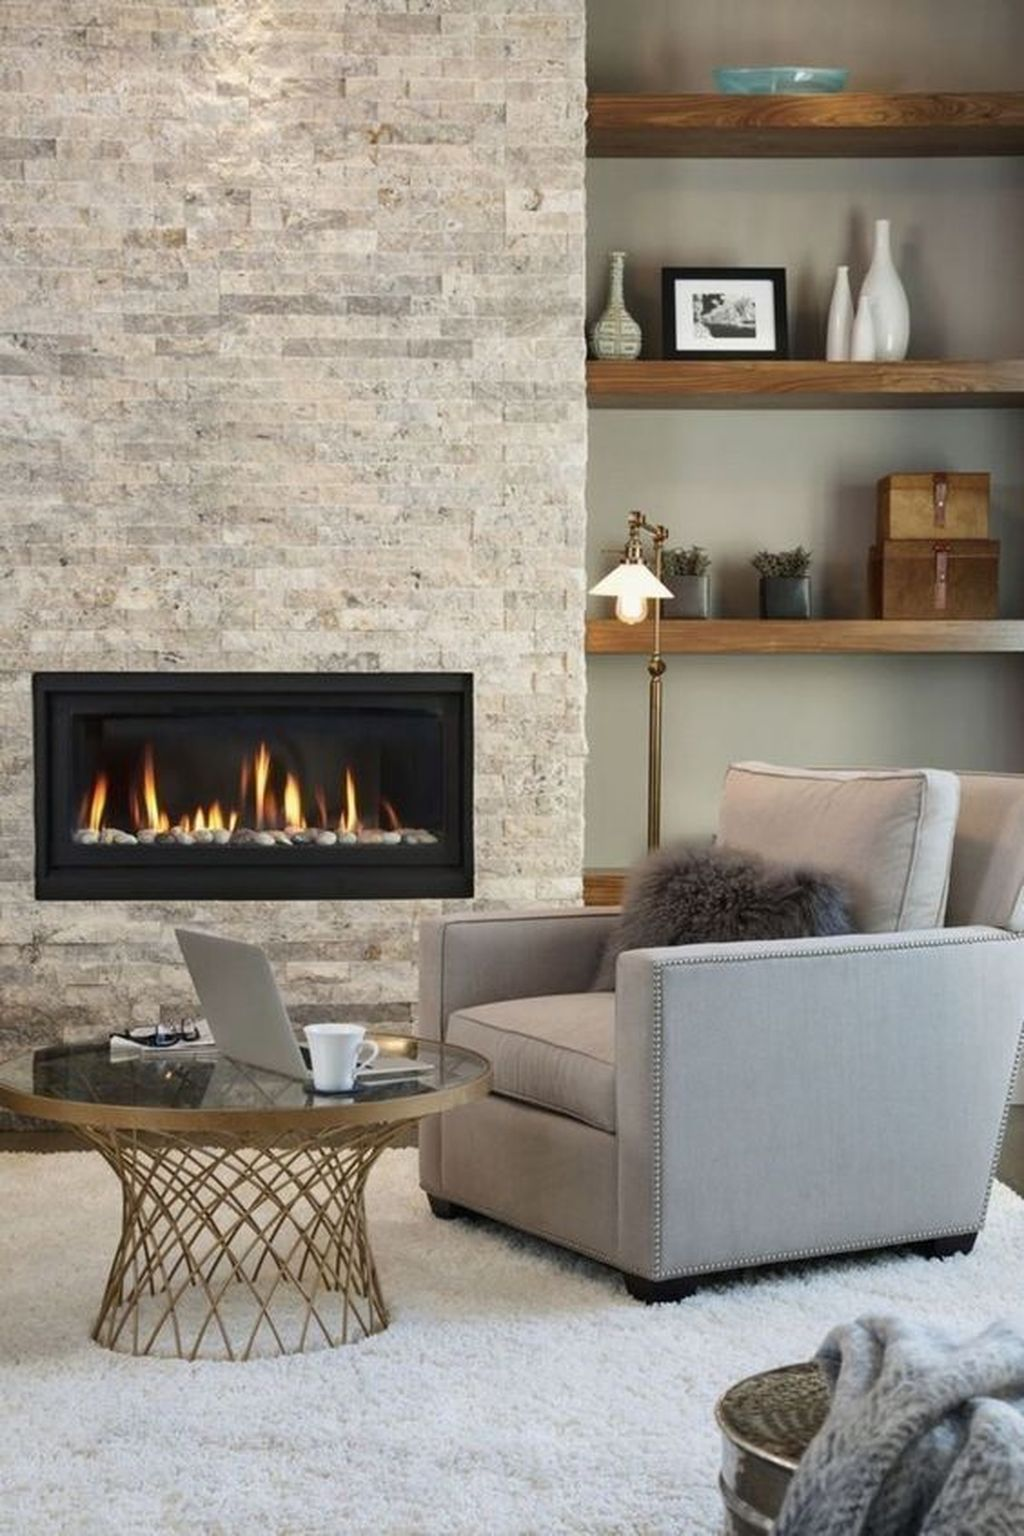 Awesome Living Room Design Ideas With Fireplace 29